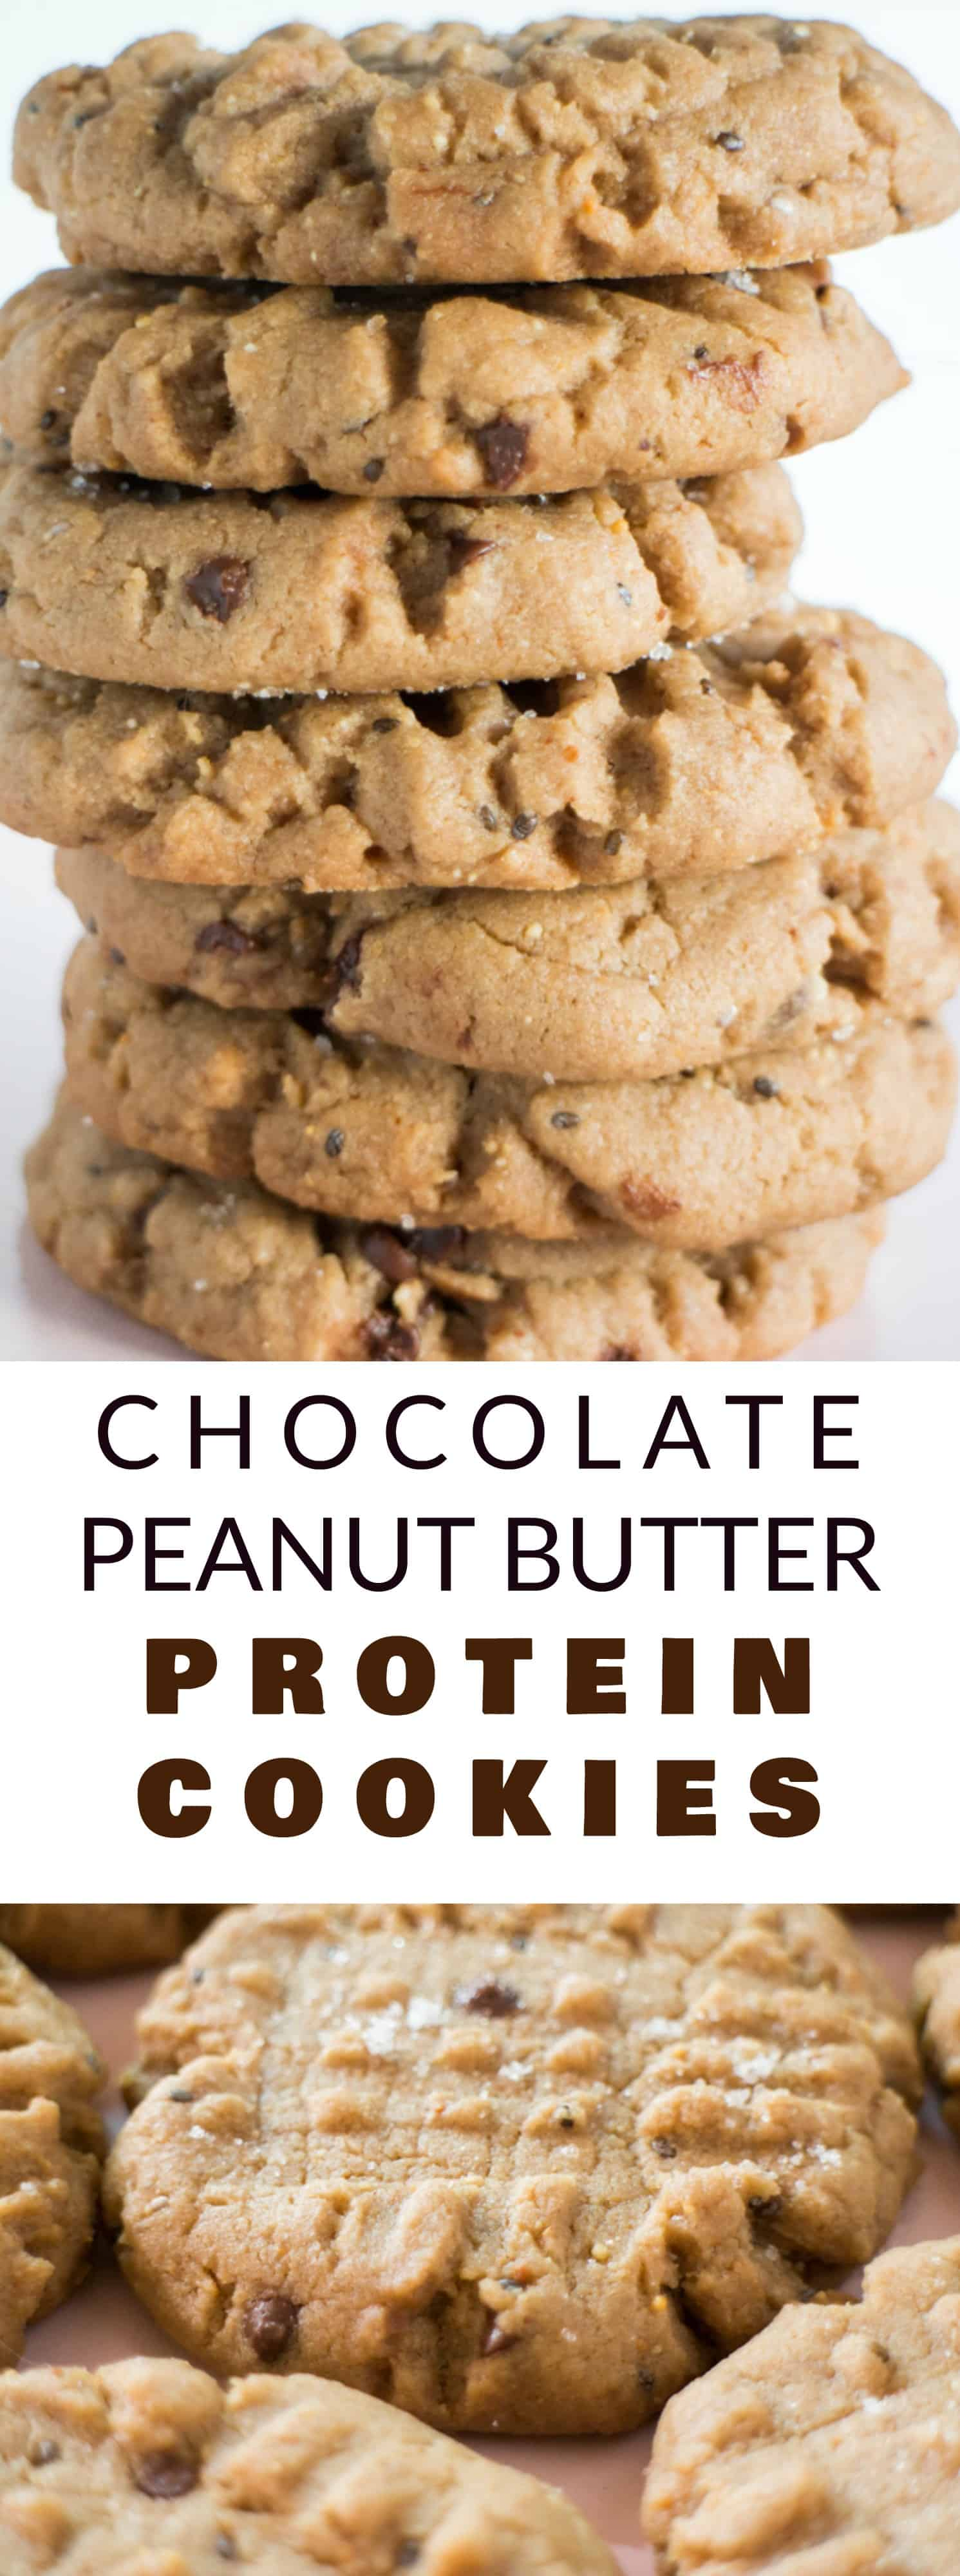 DOUBLE CHOCOLATE Peanut Butter Protein Cookie Recipe! This easy recipe makes 2 dozen delicious, healthy cookies made with chocolate protein powder. I love eating these chewy cookies for breakfast or a afternoon snack because they're a great source of iron, protein and fiber!